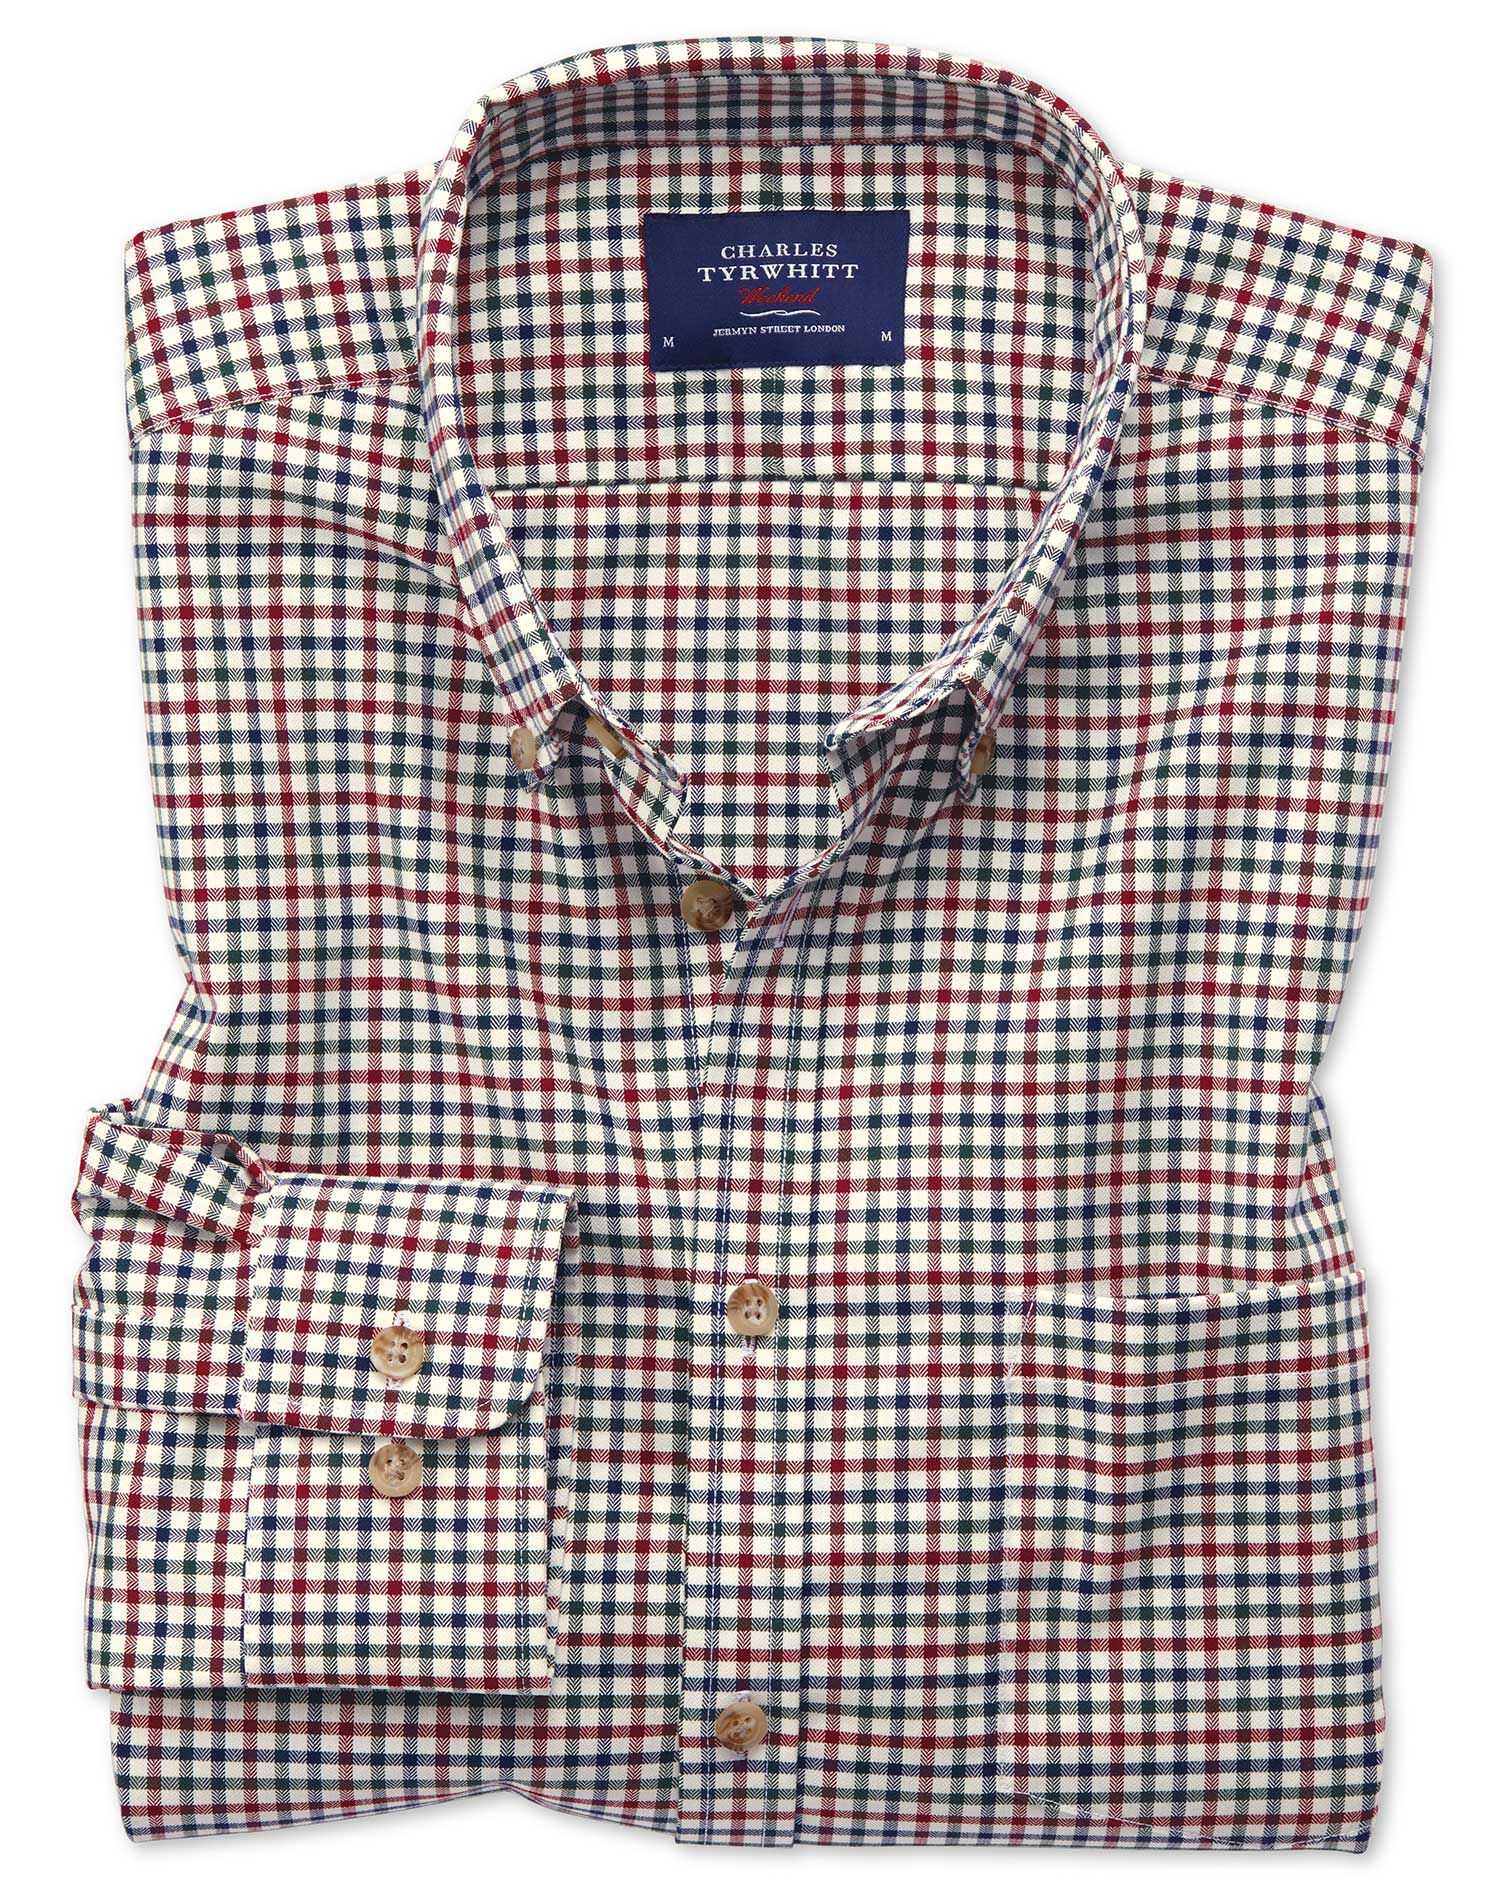 Extra Slim Fit Button-Down Non-Iron Twill Multi Gingham Cotton Shirt Single Cuff Size Large by Charl